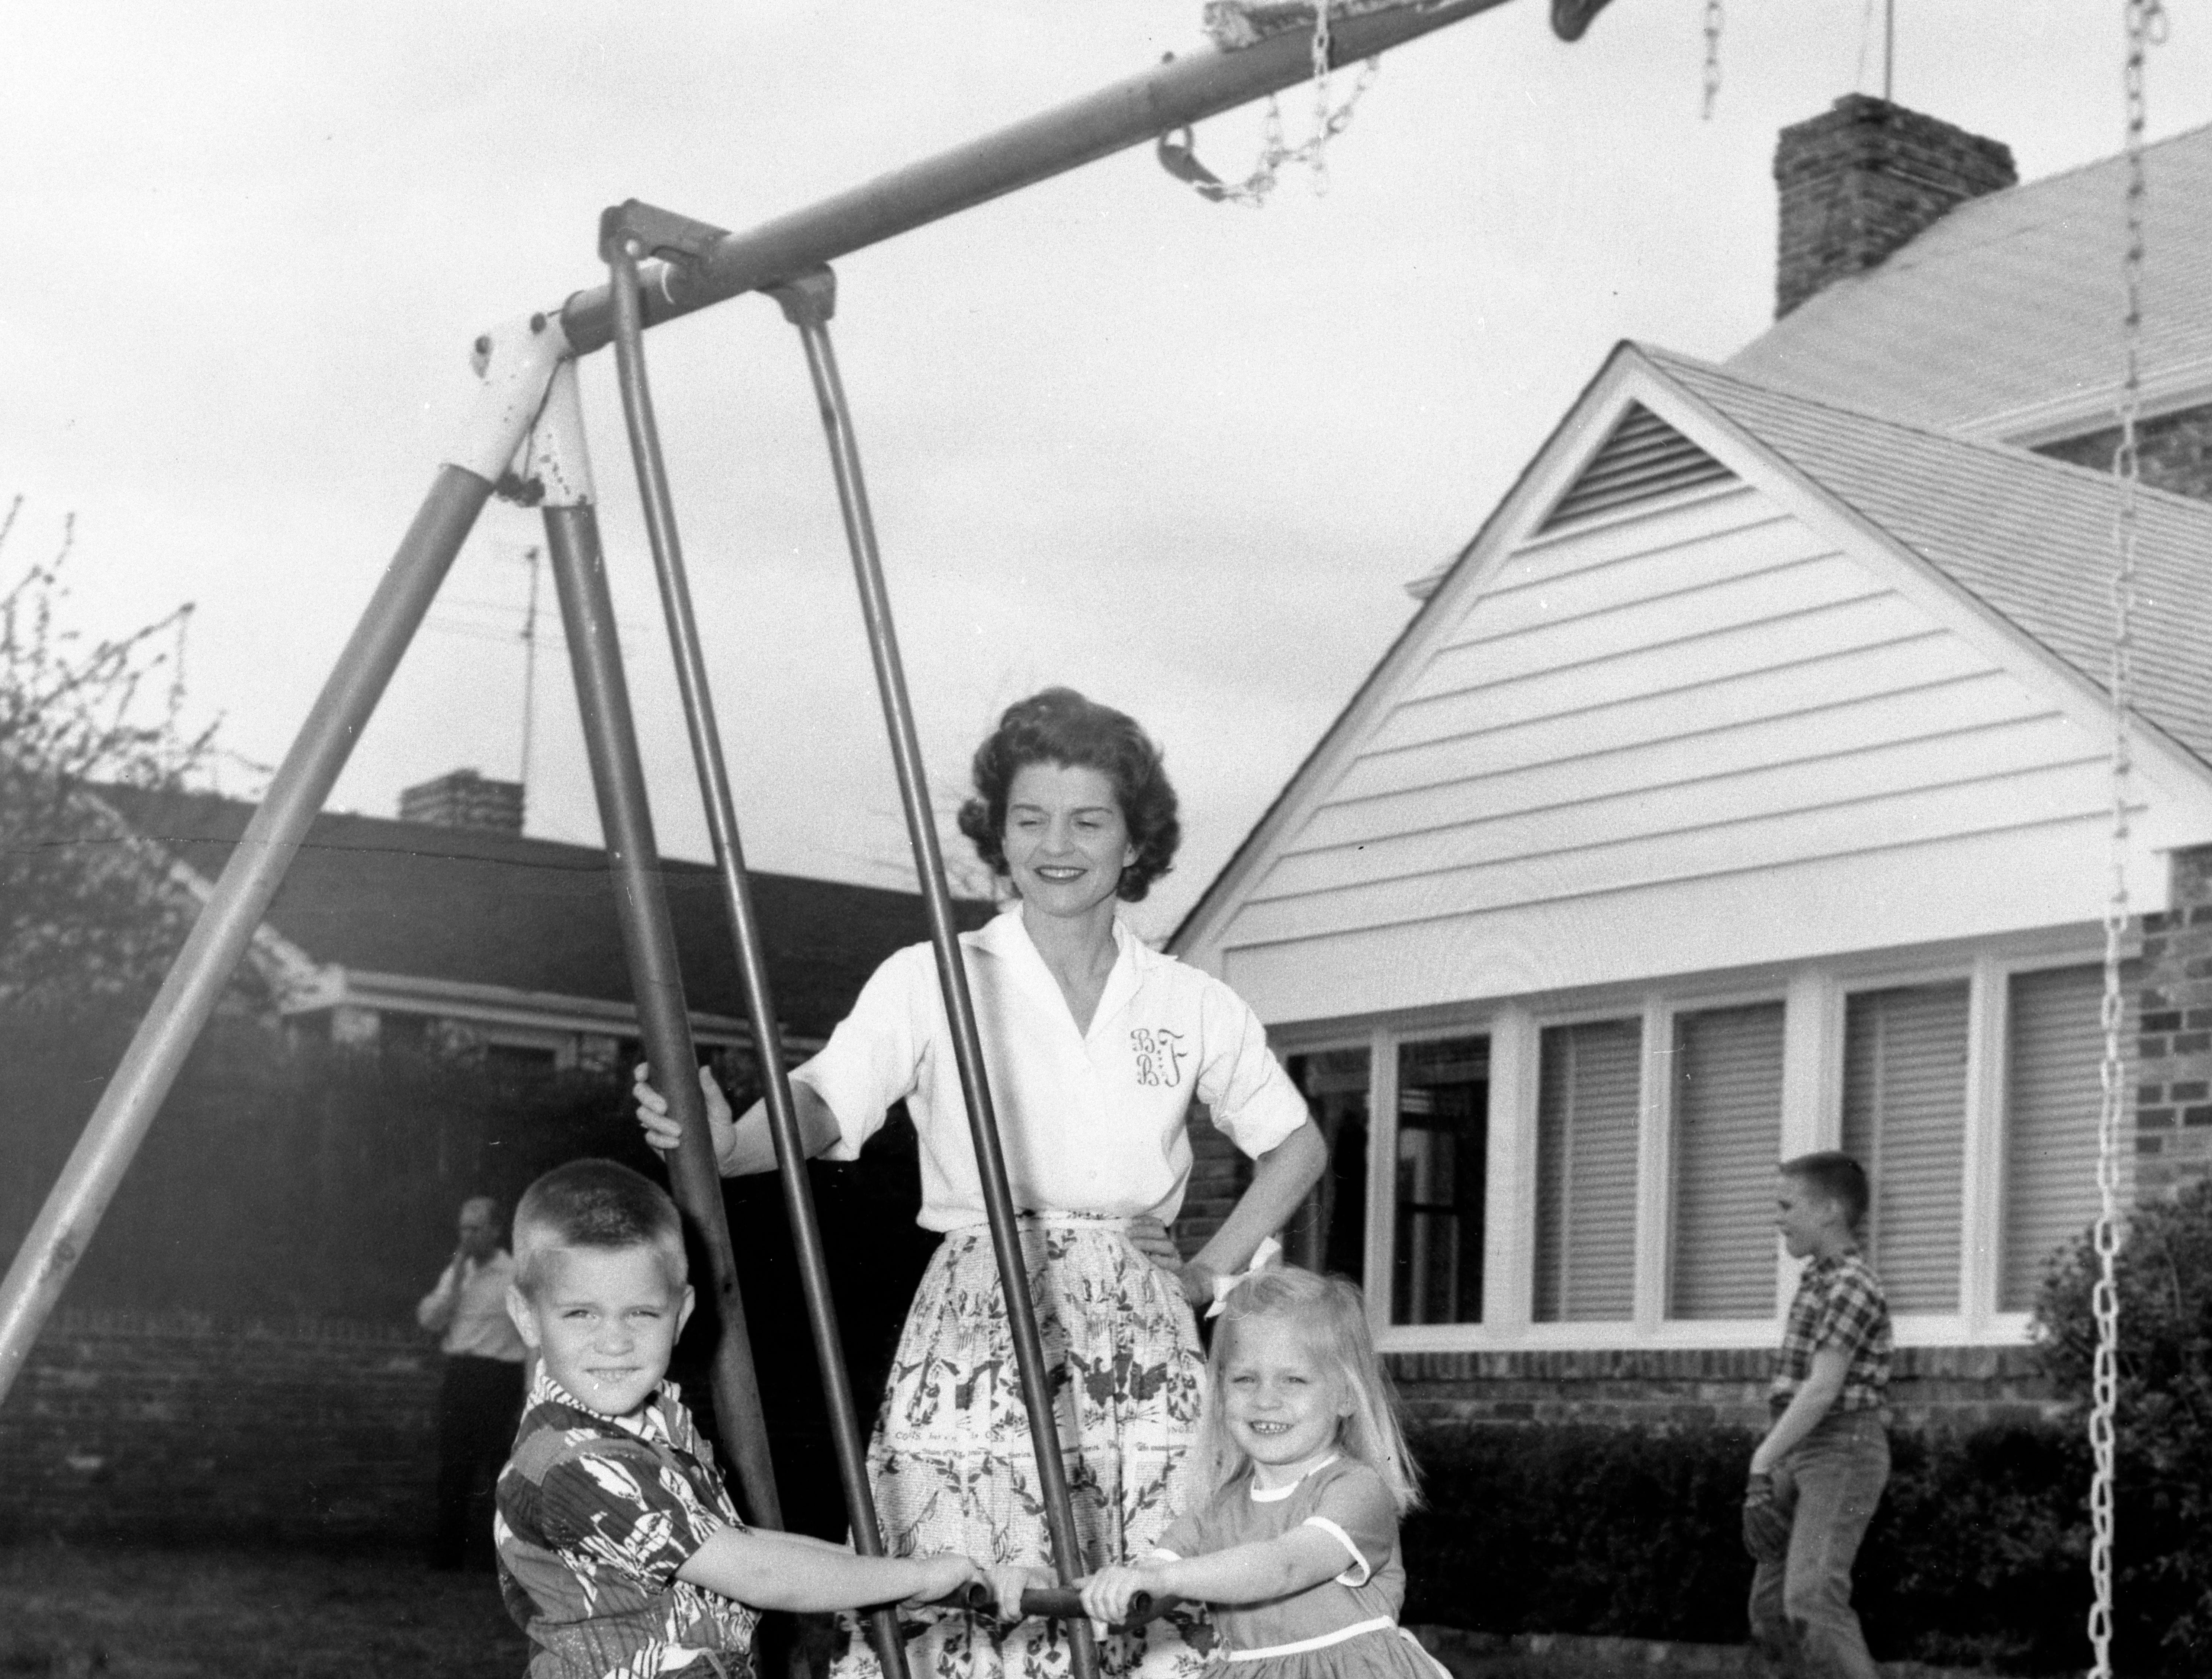 Betty playing with Steve and Susan on the swing set in the backyard of their home on Crown View Drive, as Mike plays ball in the background in 1962.